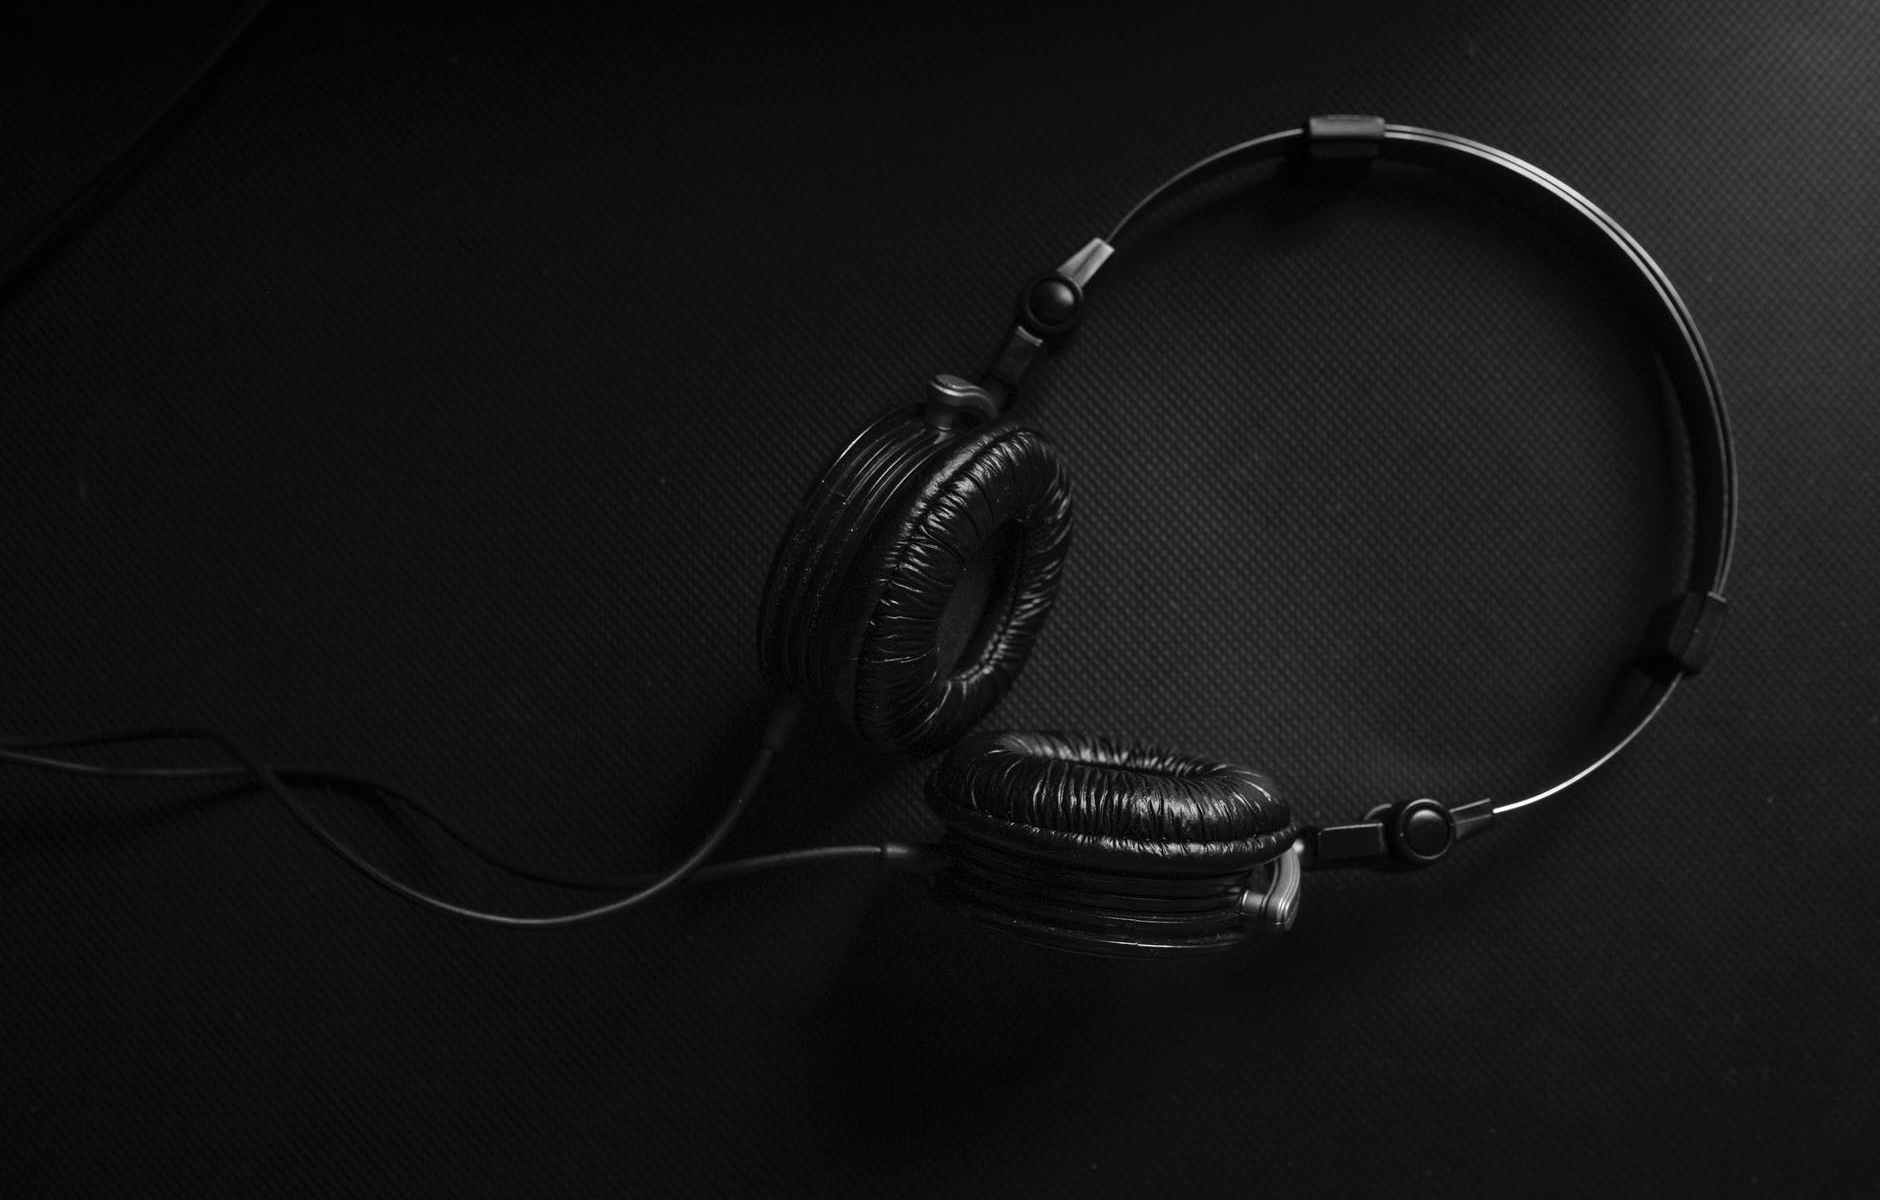 Black headphones on a black surface.